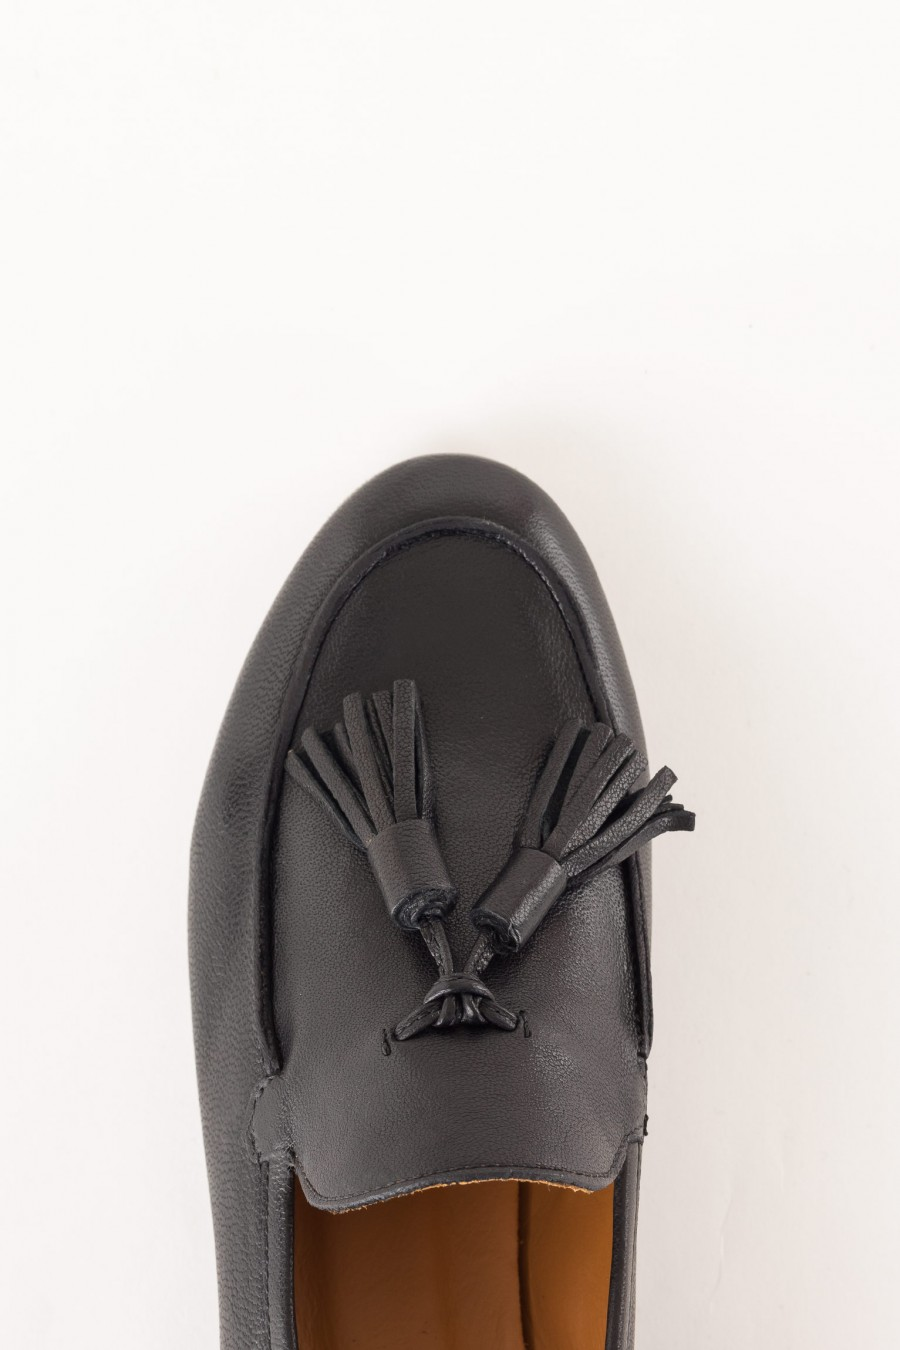 black shoe with tassels